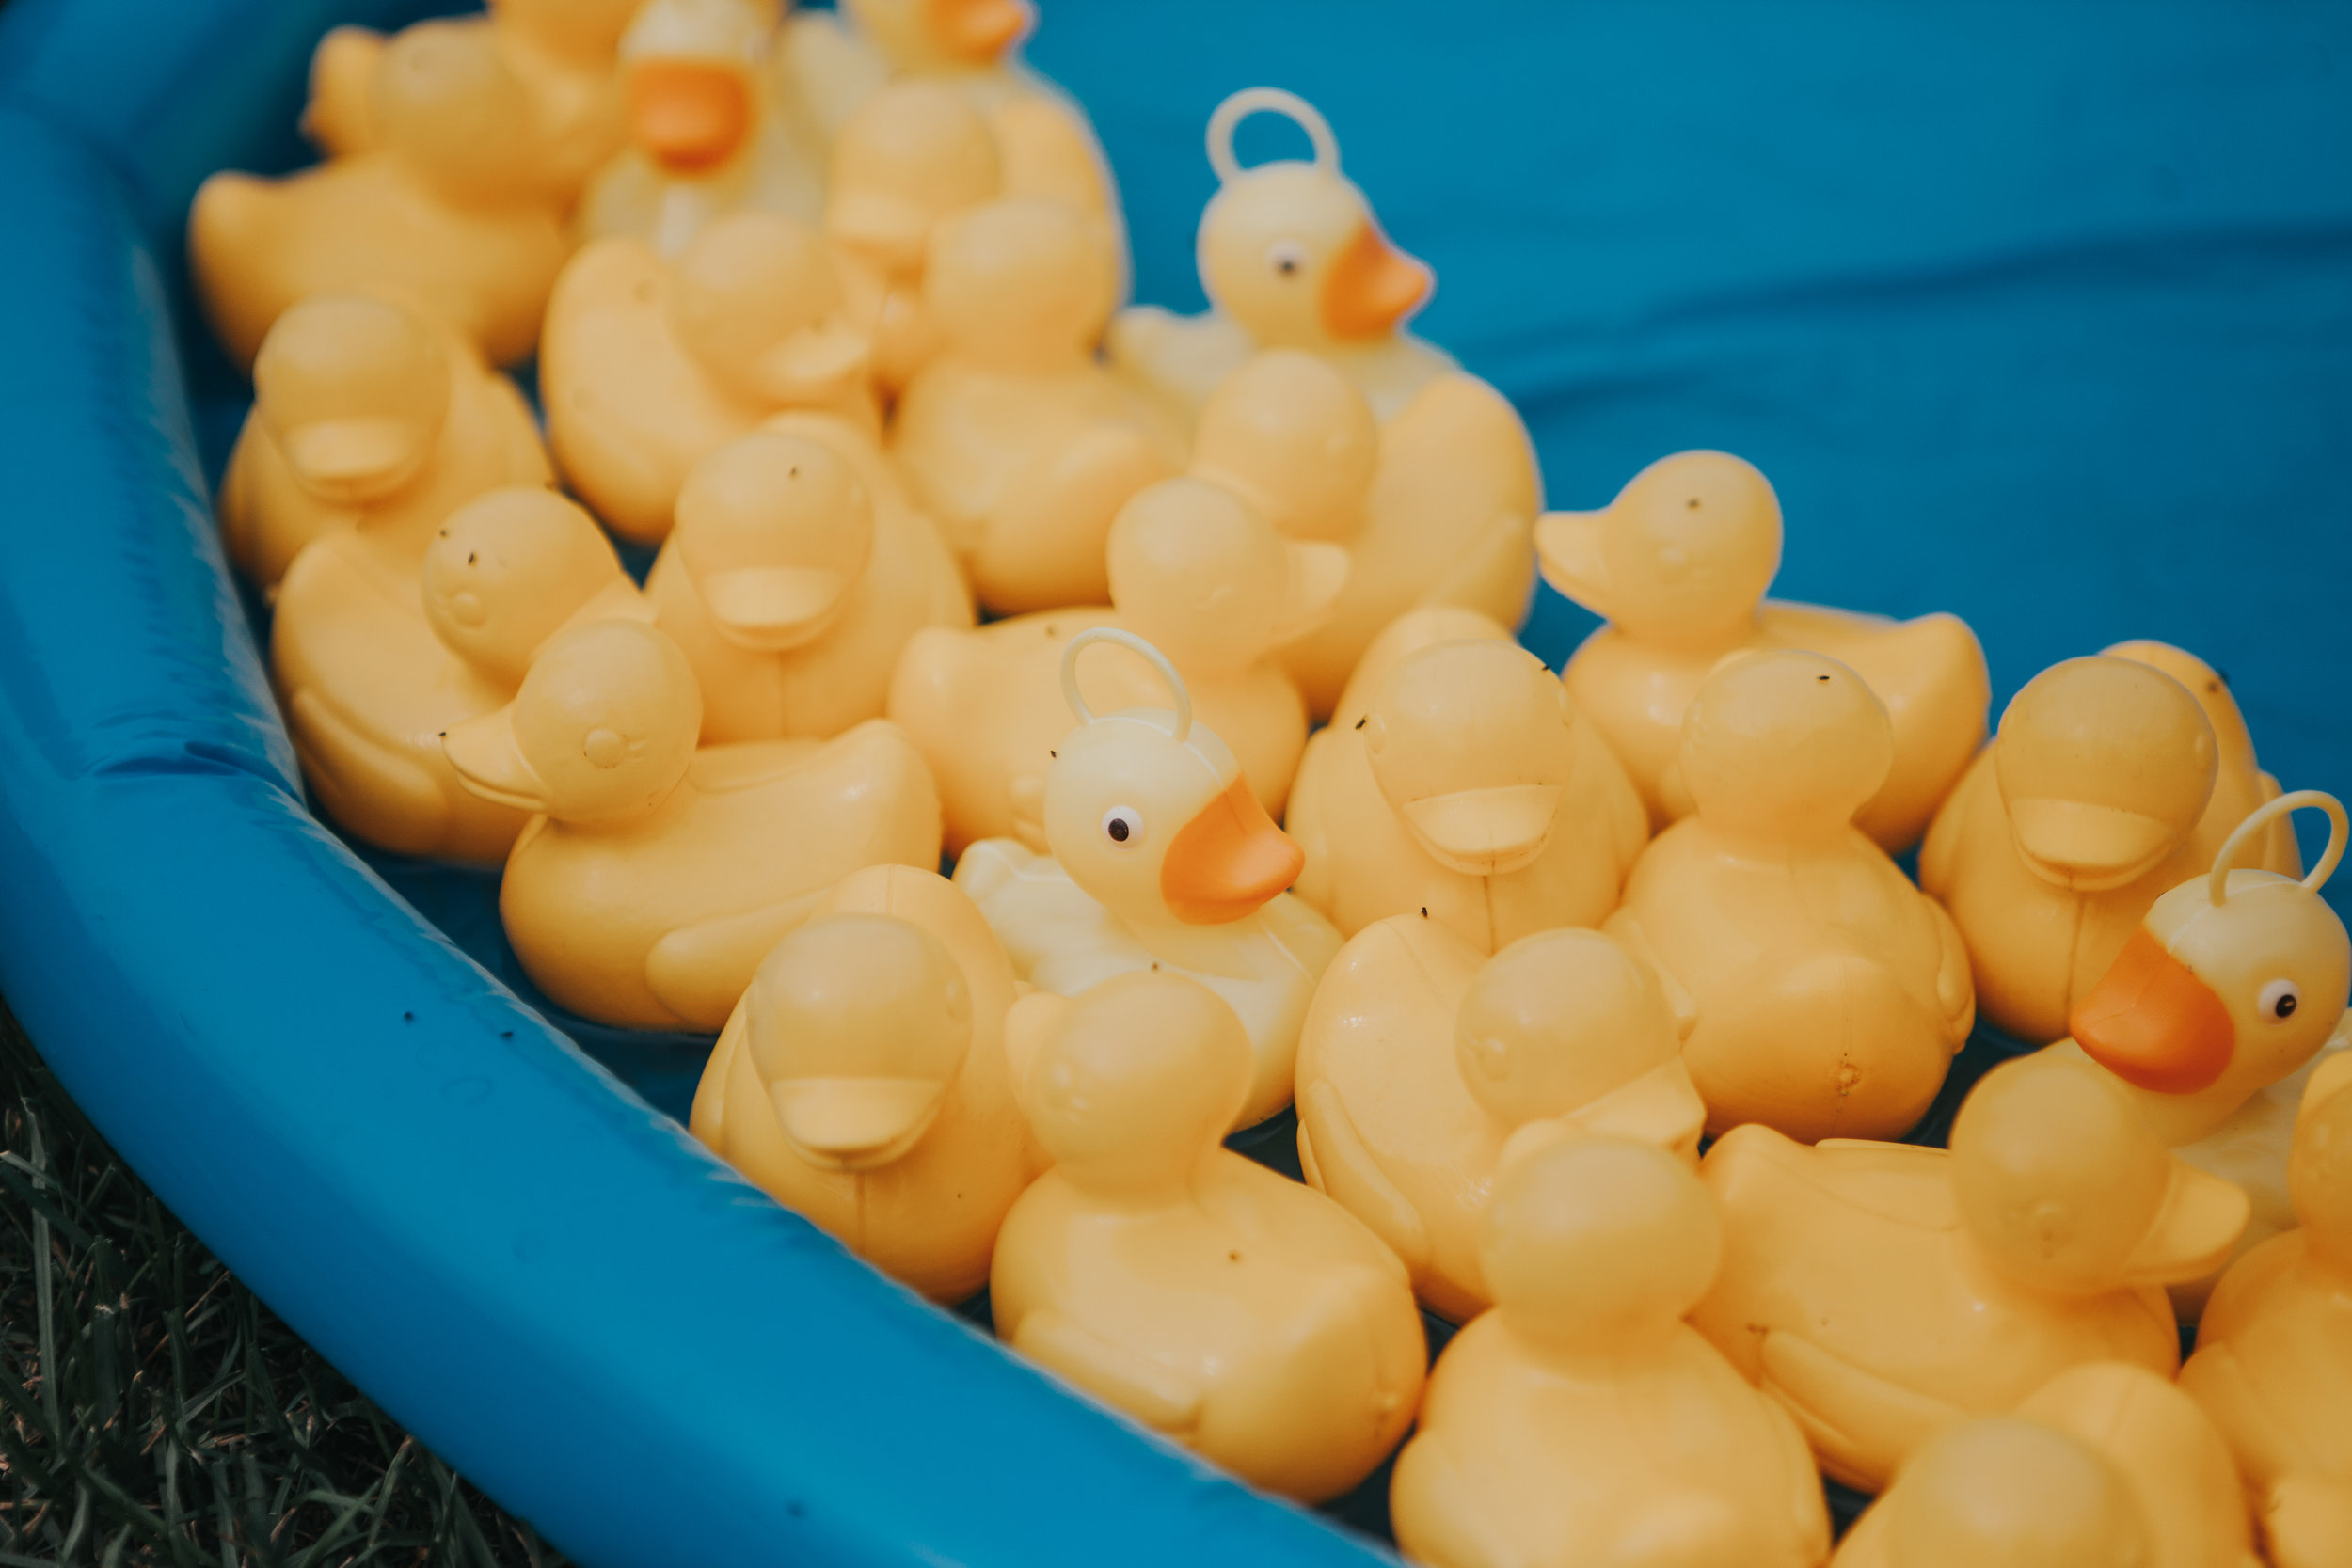 A close up of a load of yellow ducks in a blue paddling pool as part of a hook a duck, outdoor wedding game.